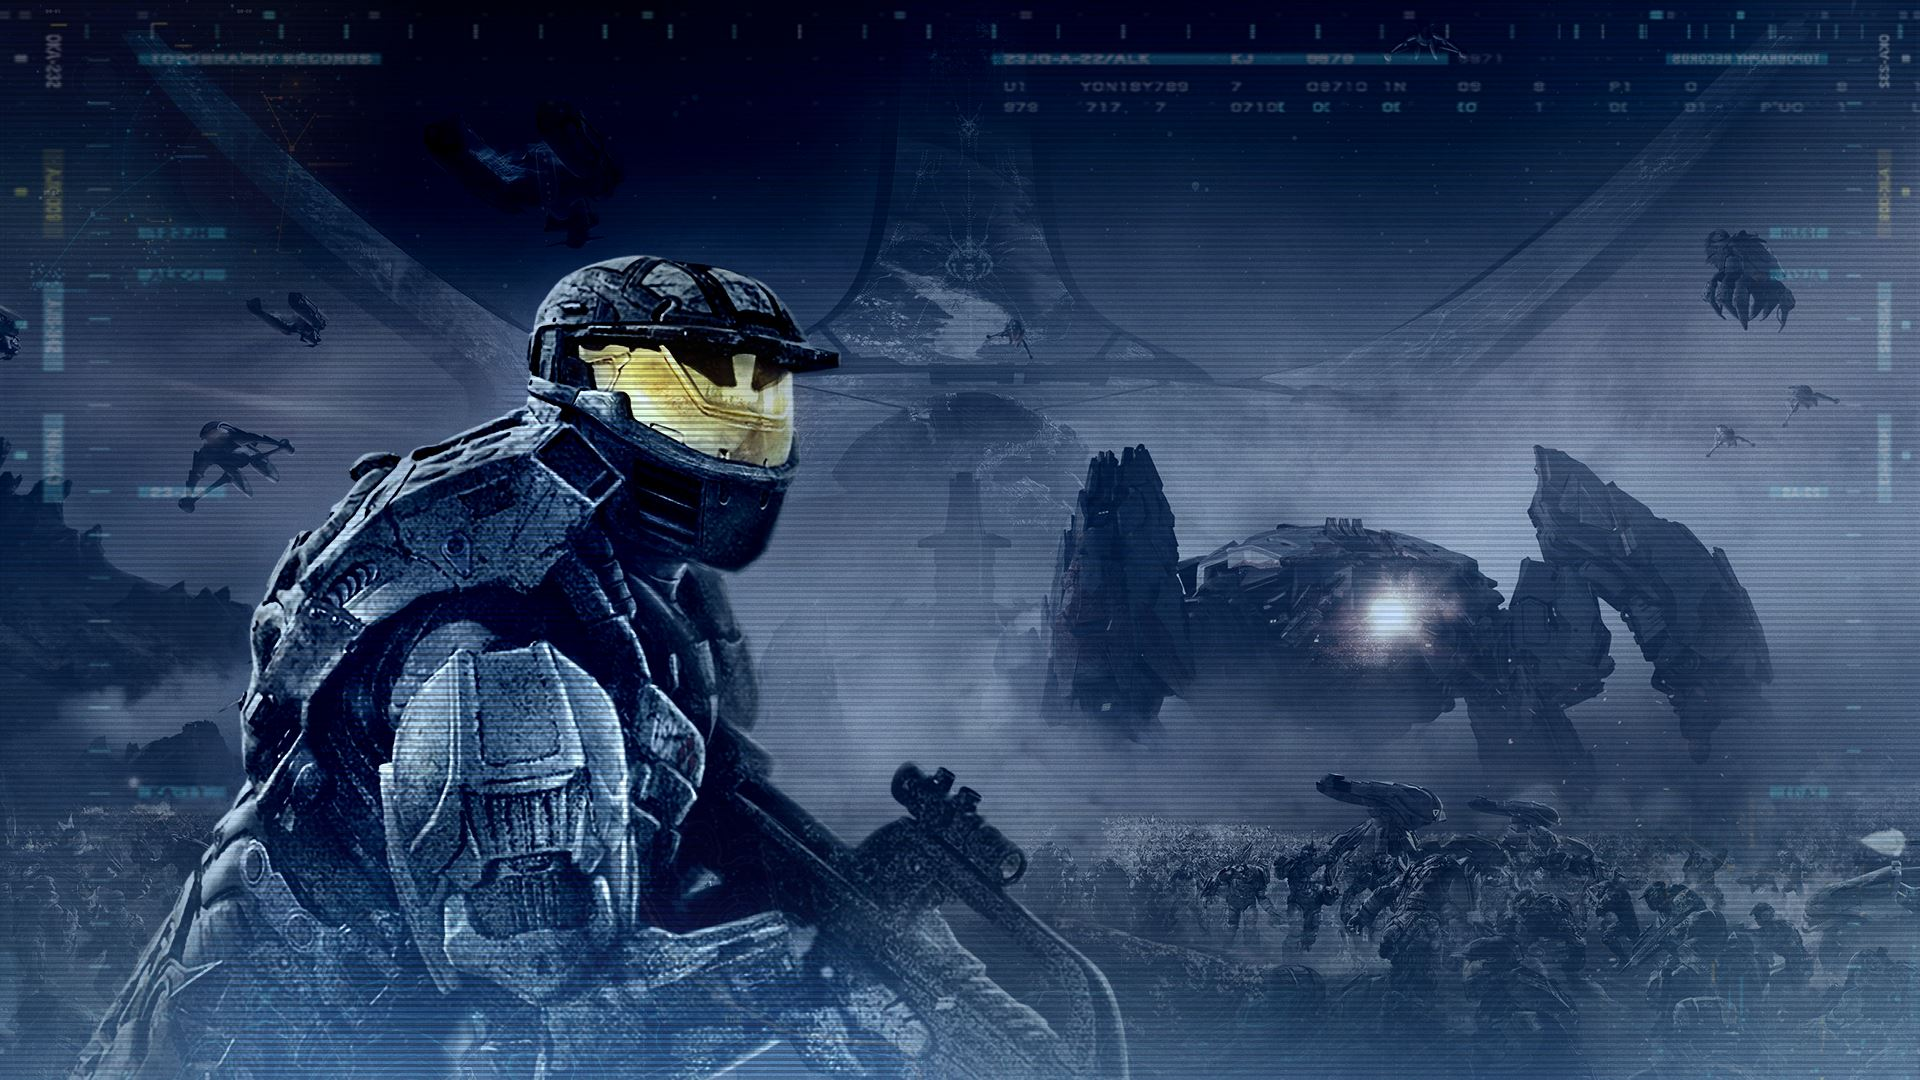 Halo Wars 2 Wallpaper